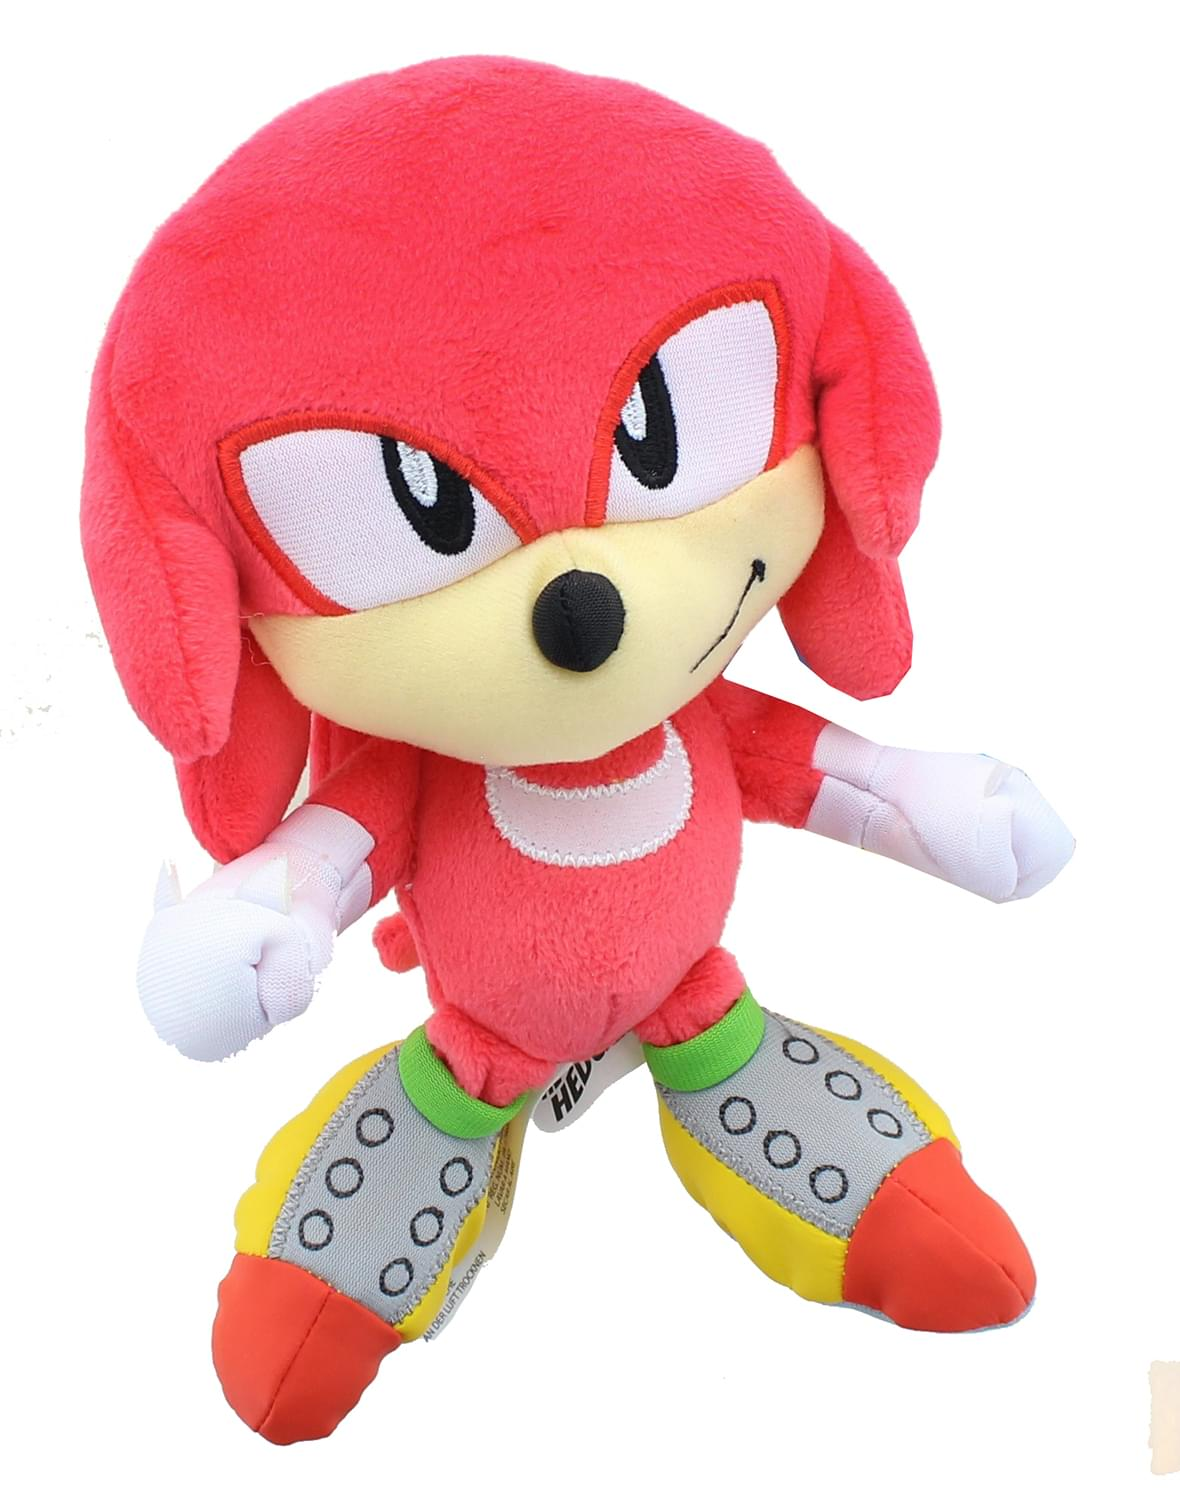 Sonic the Hedgehog 7 Inch Character Plush | Knuckles